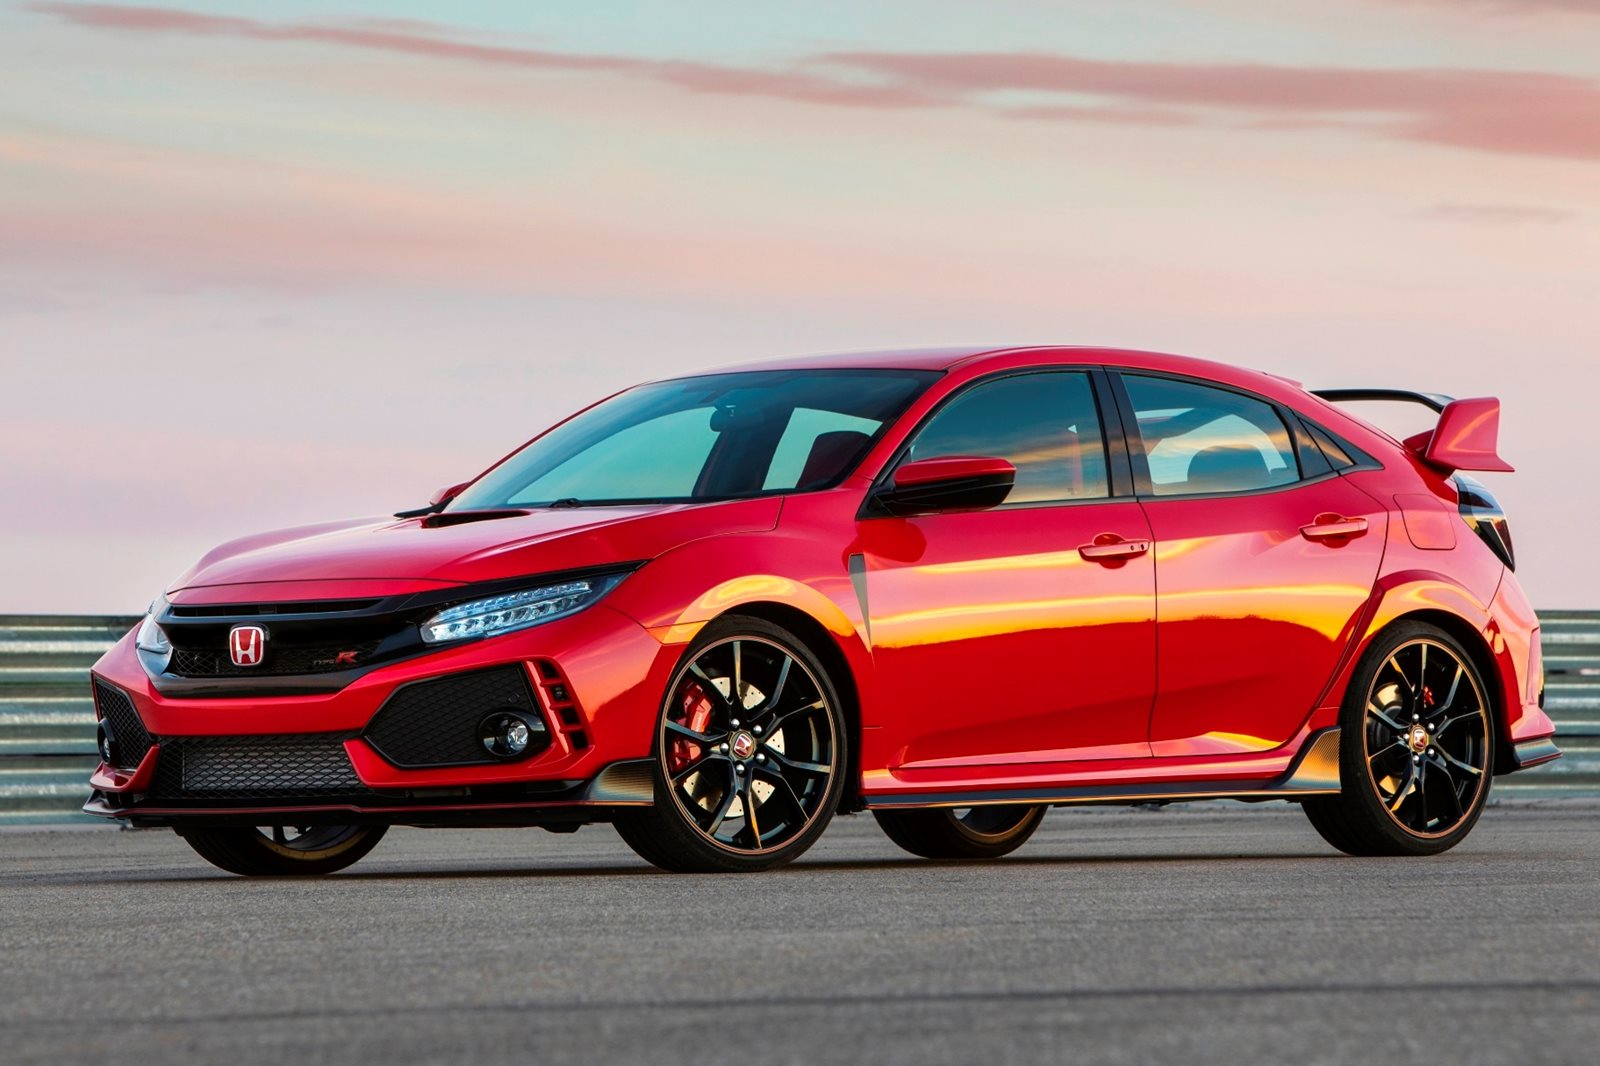 2018 Honda Civic Type R Review, Trims, Specs and Price ...